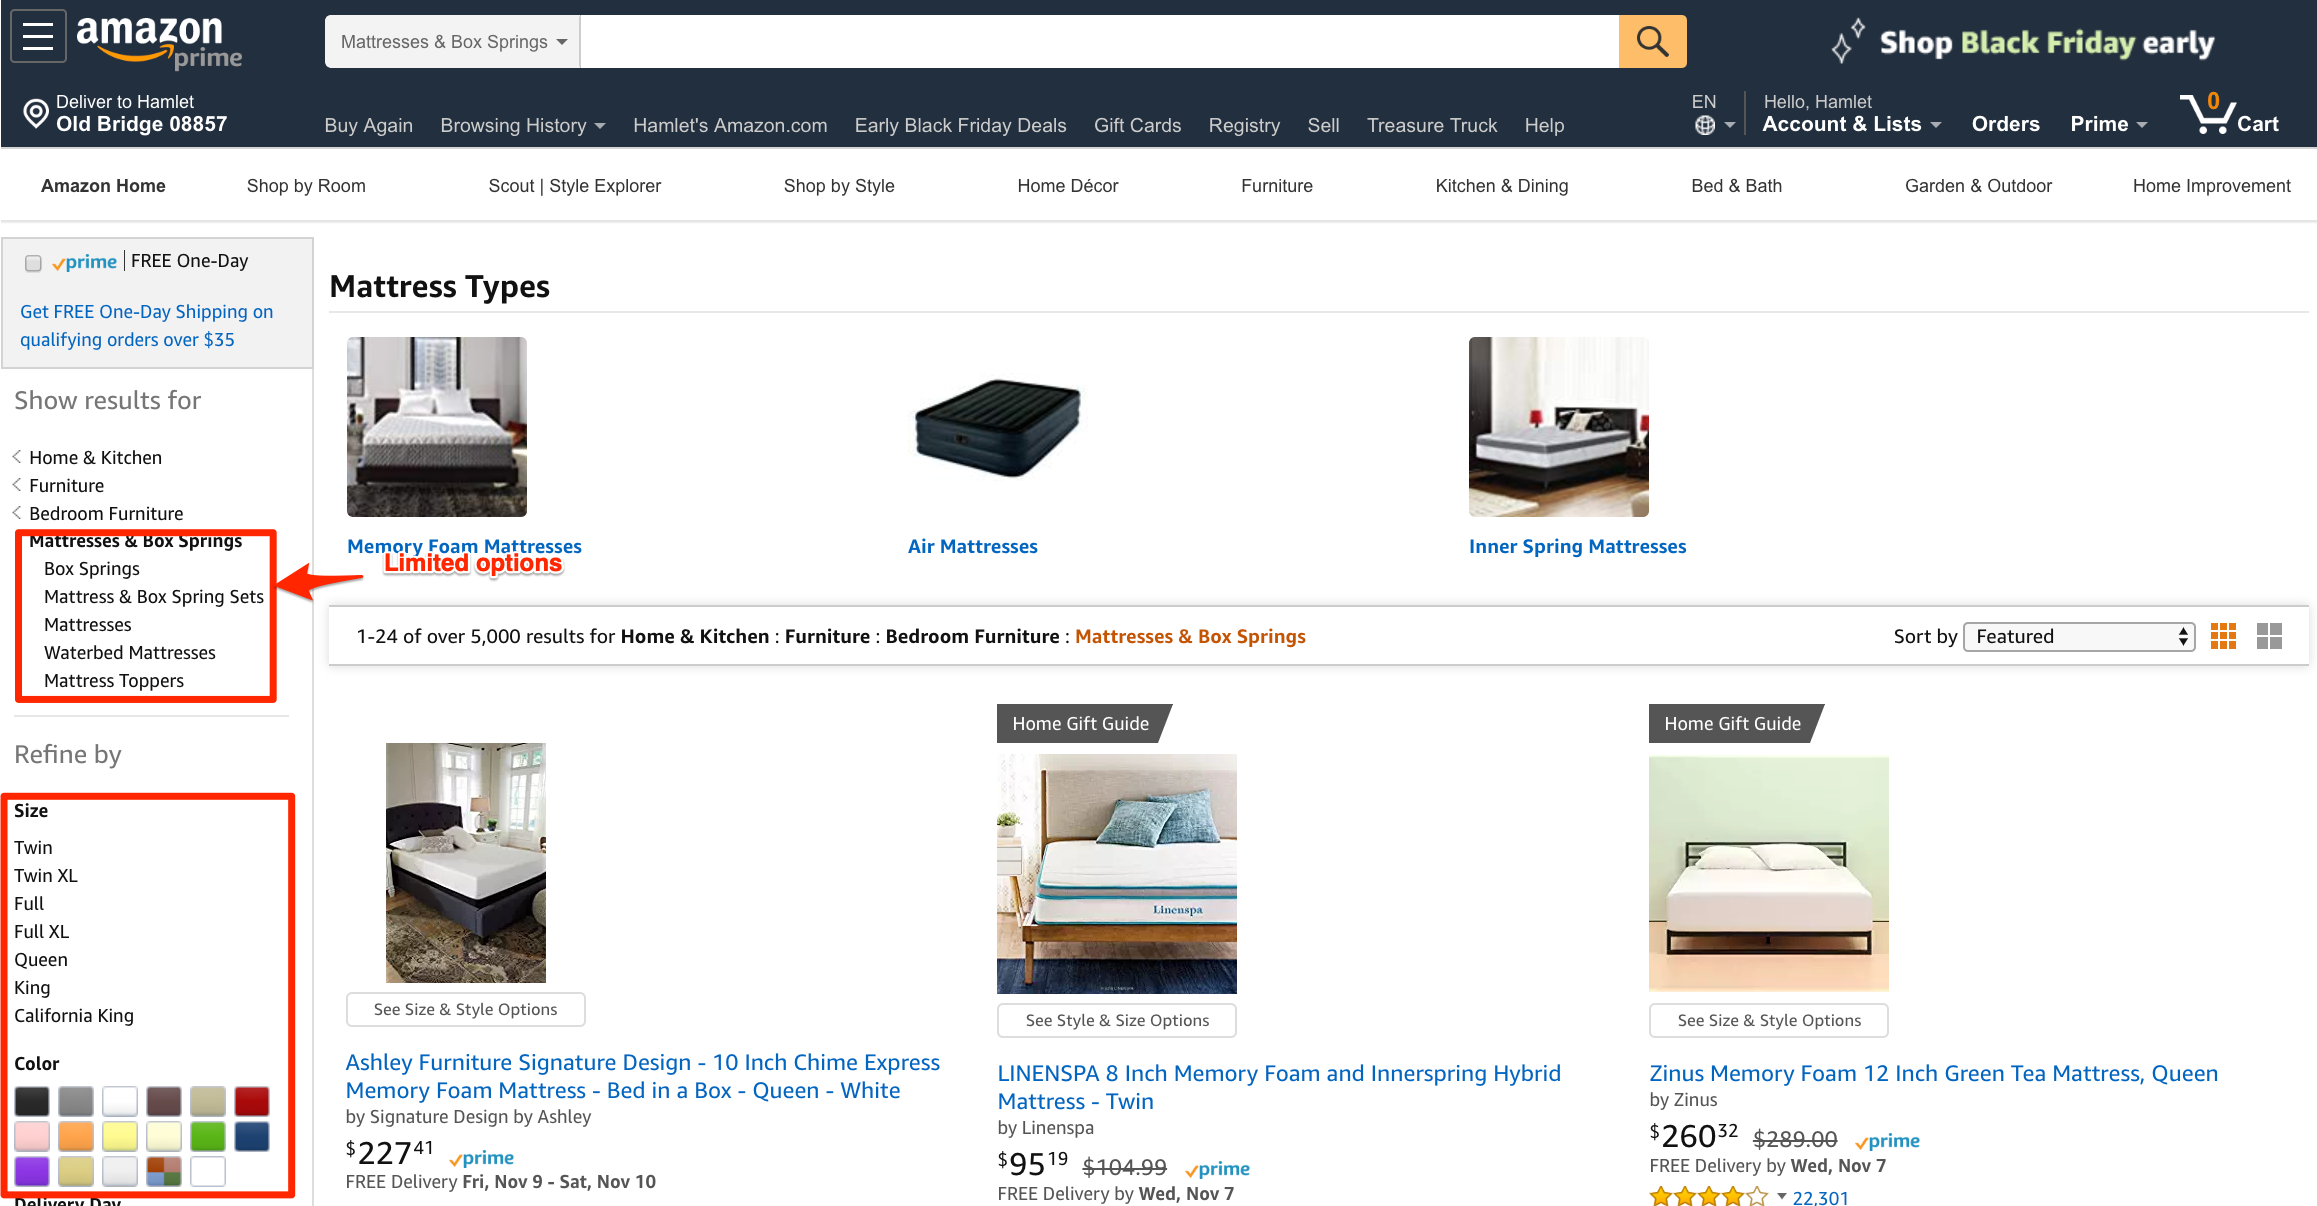 Amazon cannot provide the same sort of categories for mattresses as Wayfair. <em>Click image to enlarge.</em>